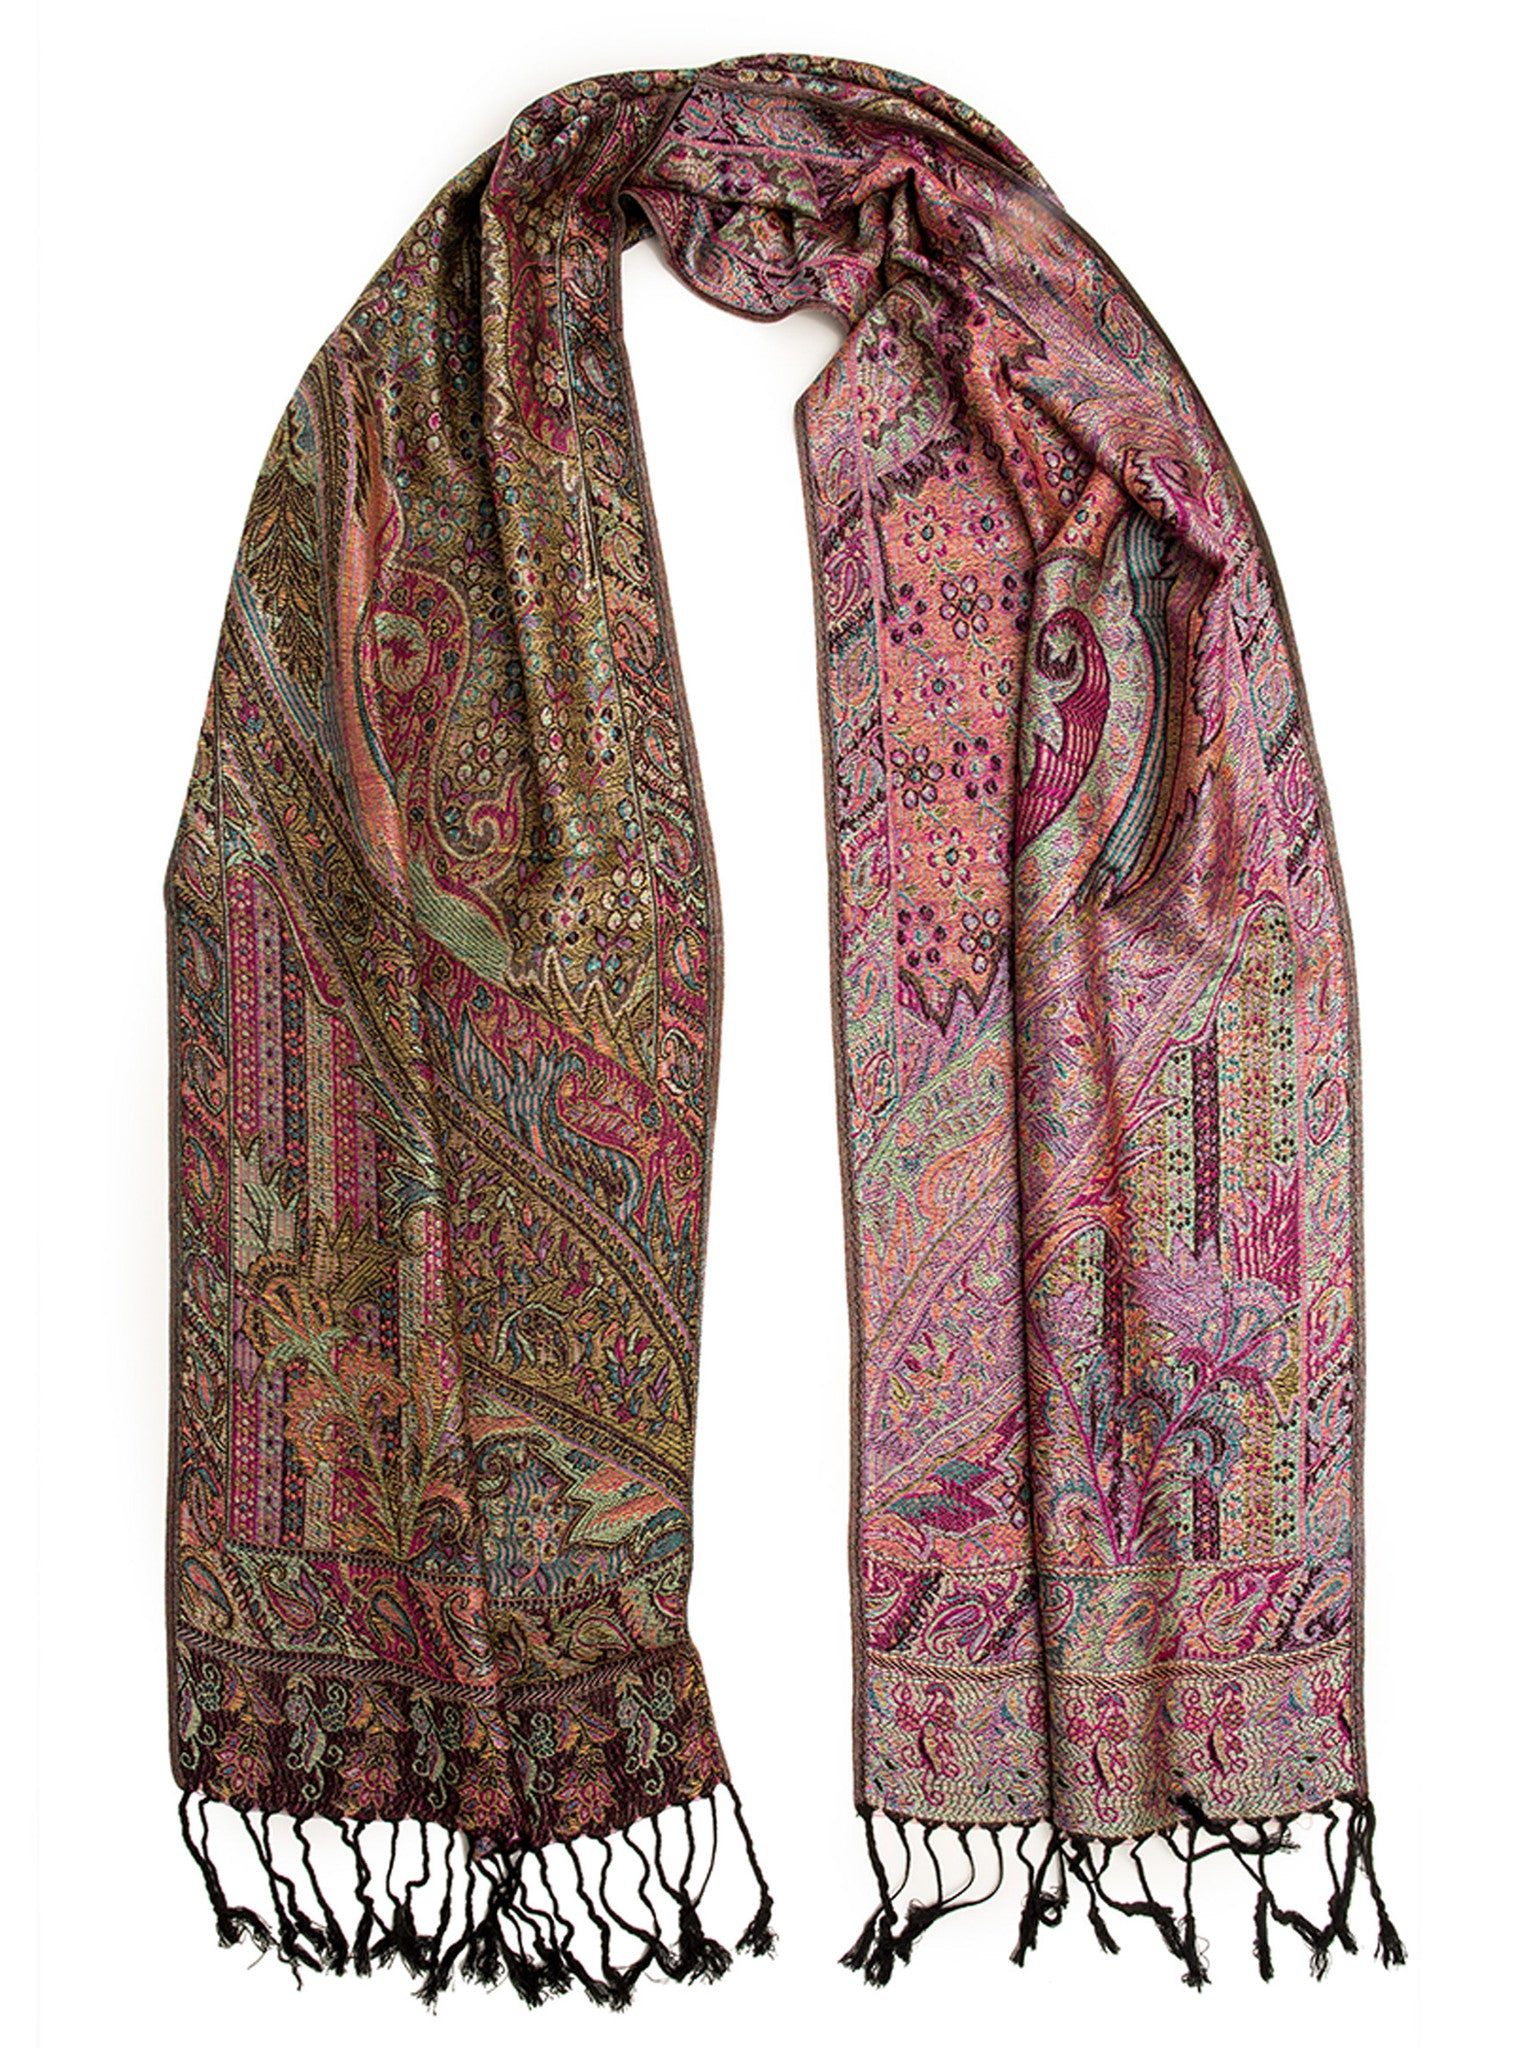 Scarves - Rajana Scarf, Pashmina Indian Paisley Traditional Jacquard Scarf -(Opal / One Size) Bohomonde  - 2